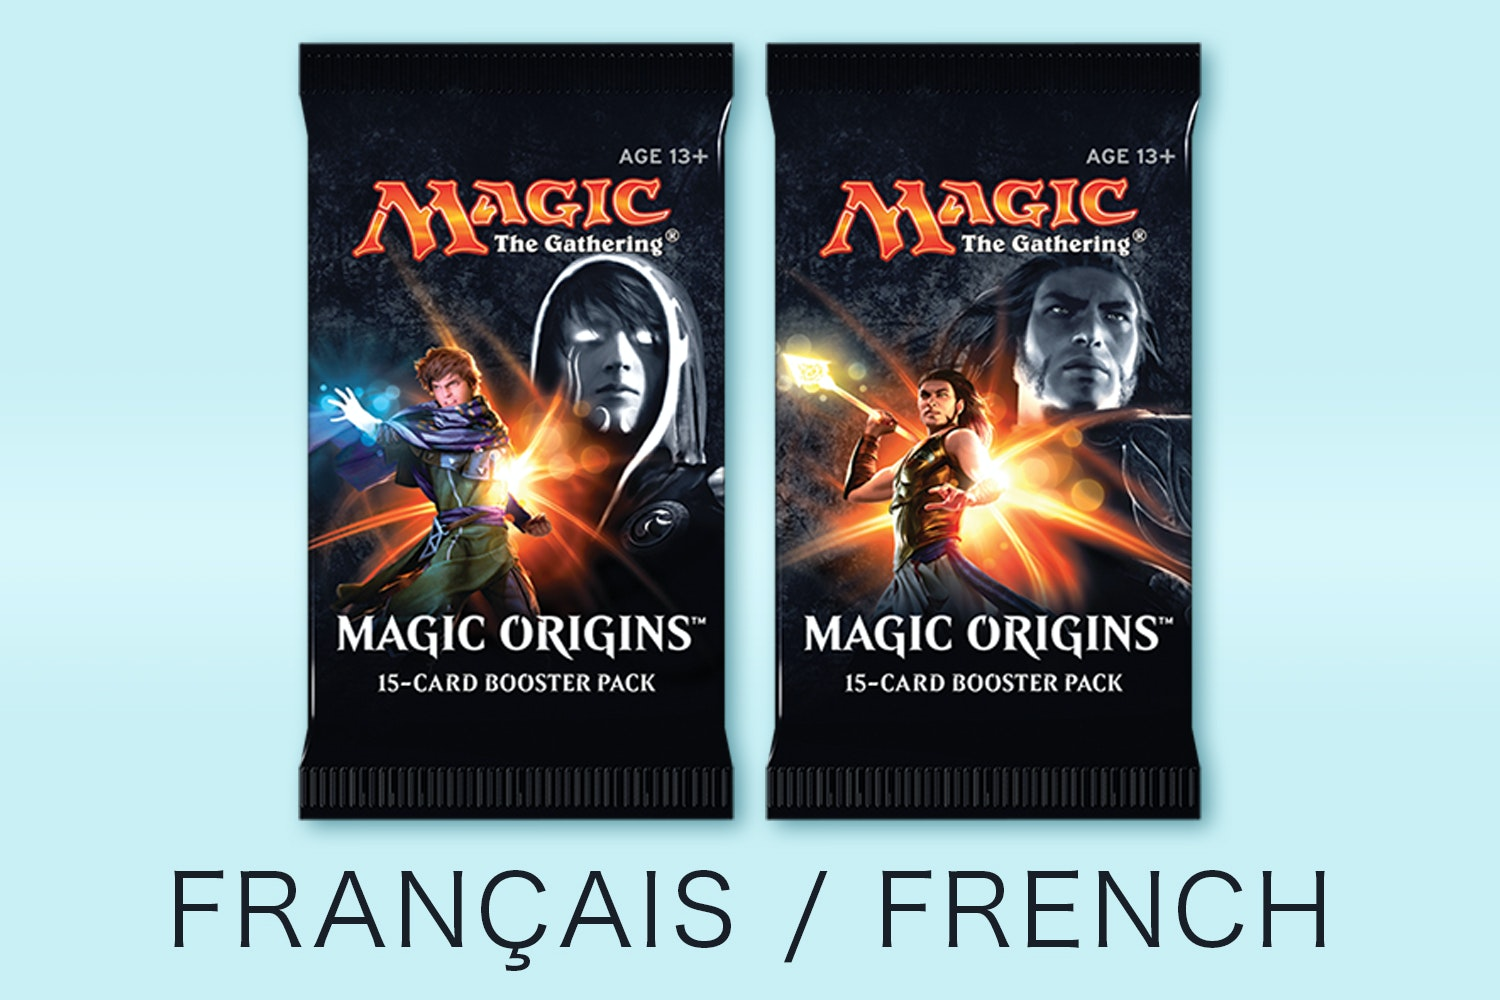 Origins in French